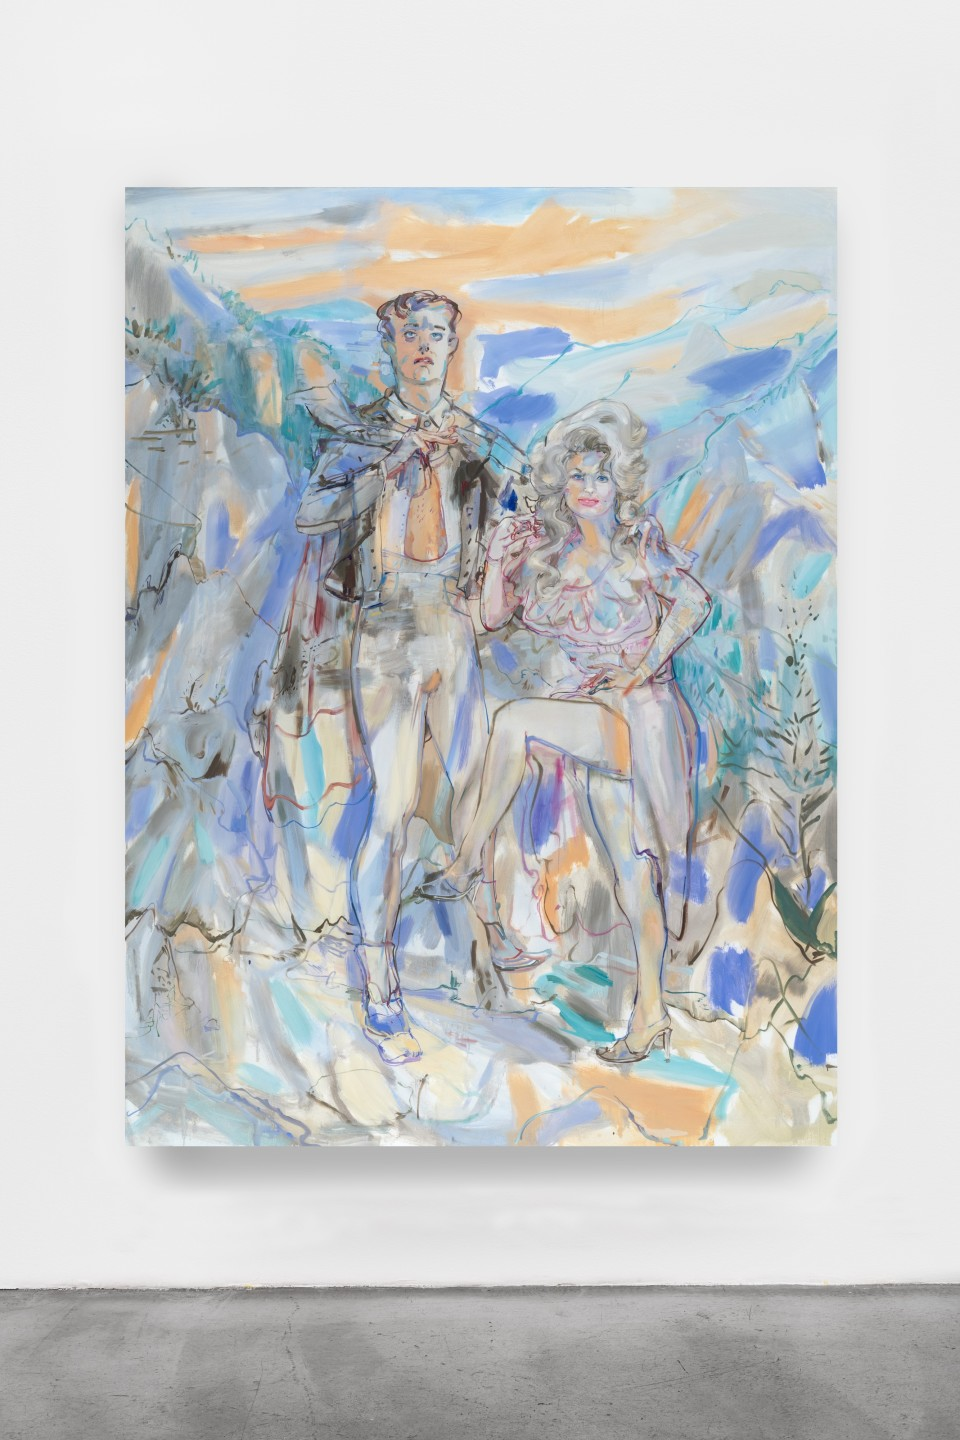 Artwork: Angela Dufresne  Dolly Parton and Lord Byron, 2020  signed and dated verso  oil on canvas  96 x 72 inches (243.8 x 182.9 cm)